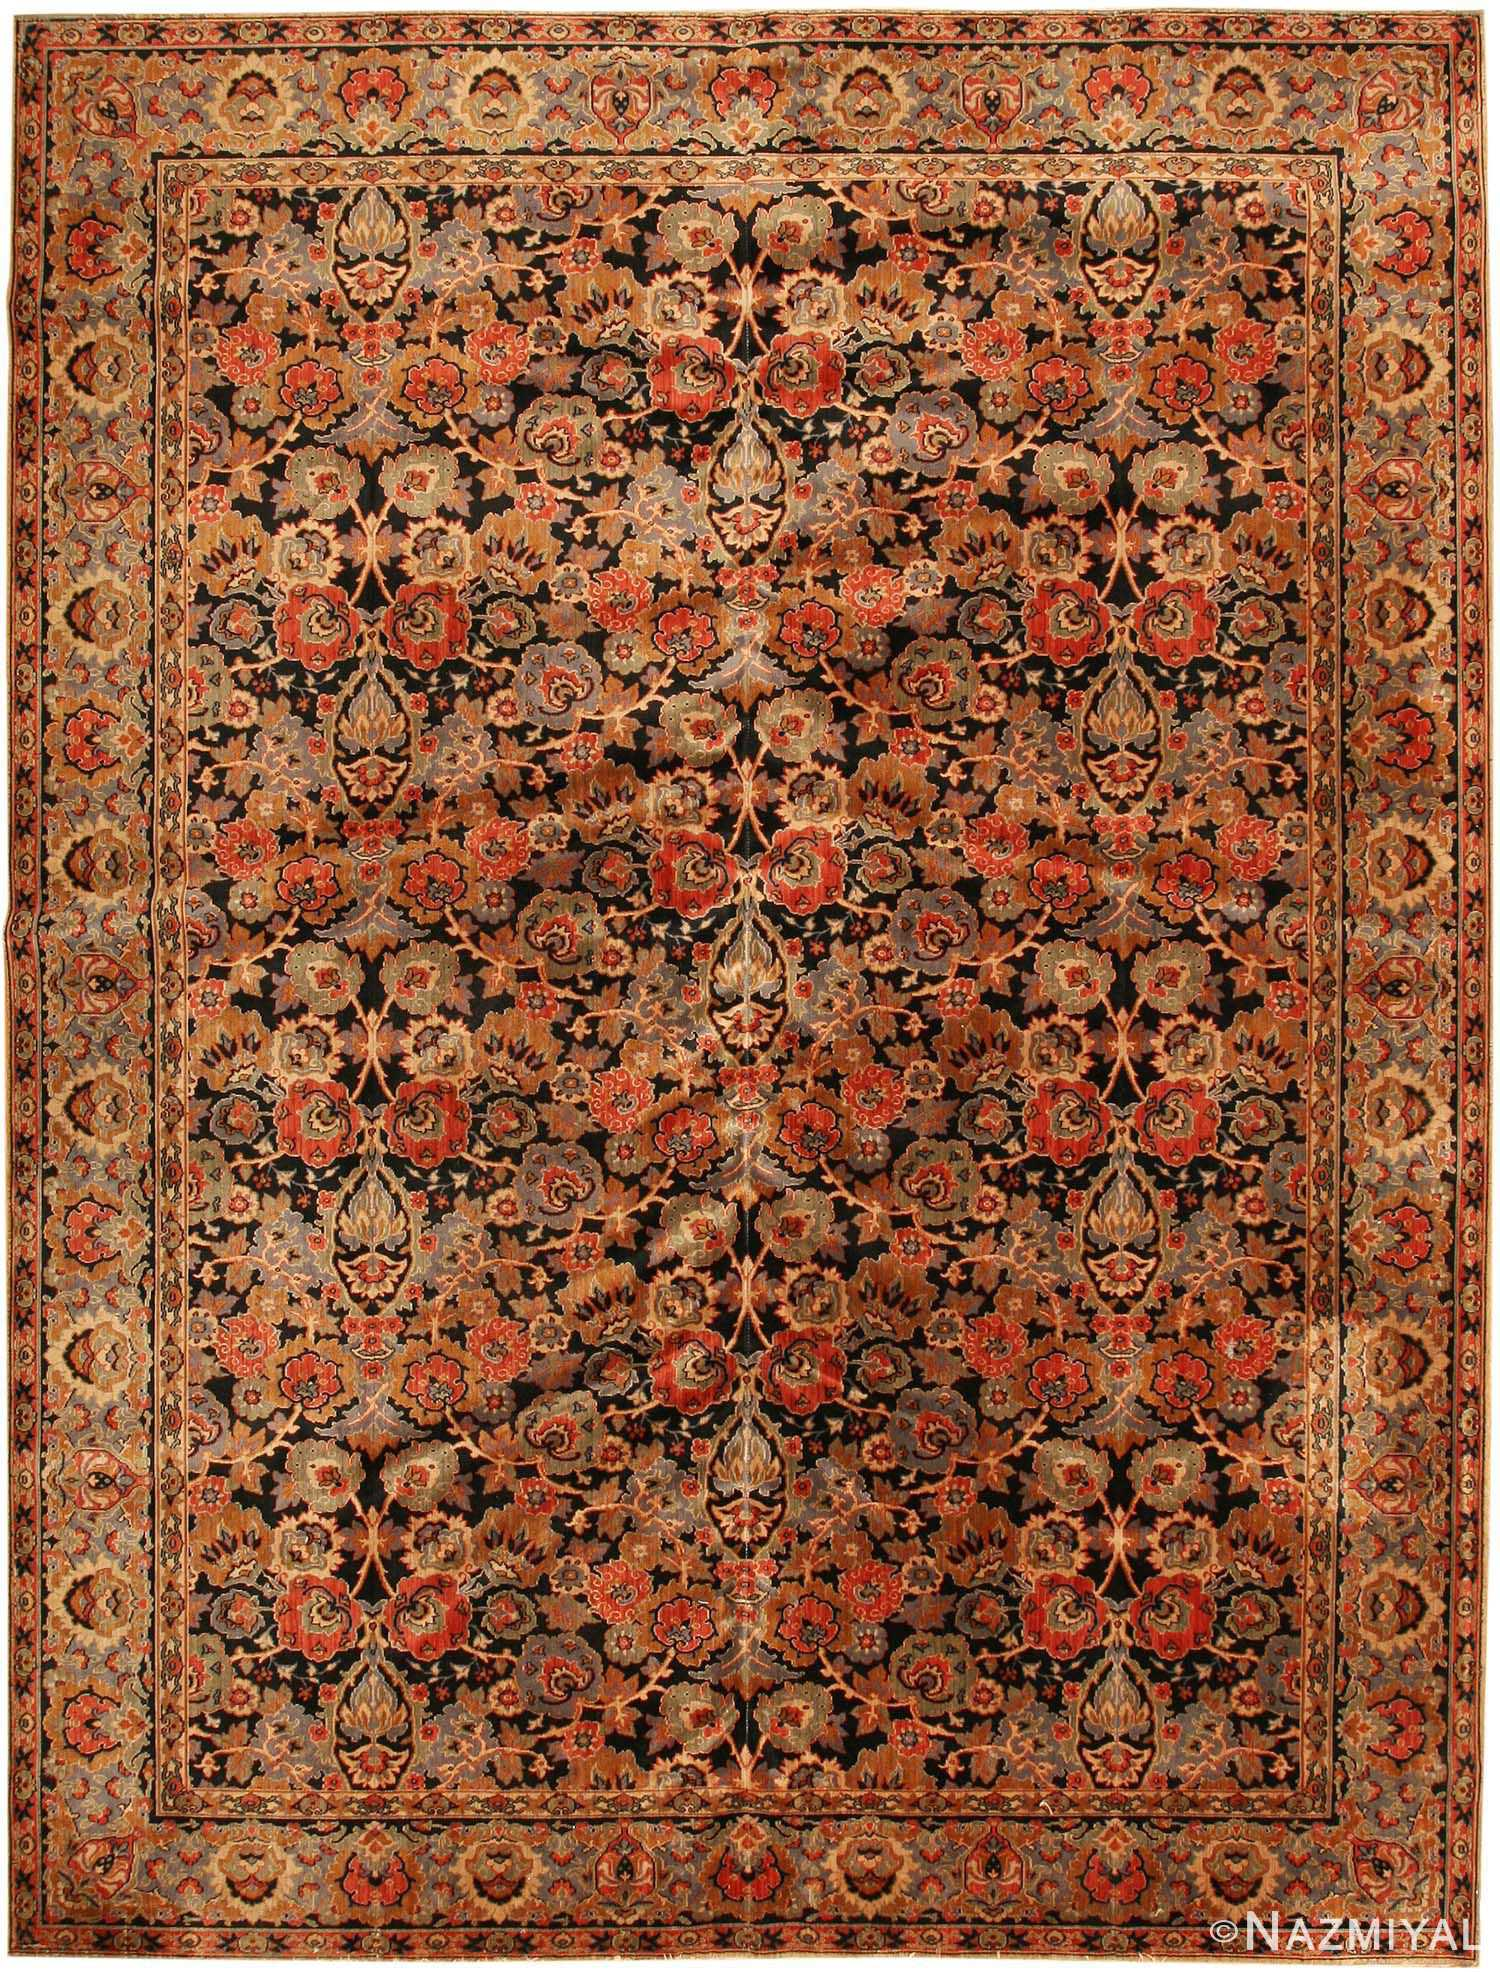 Antique Axminster English Rug 2442 By Nazmiyal Antique Rugs